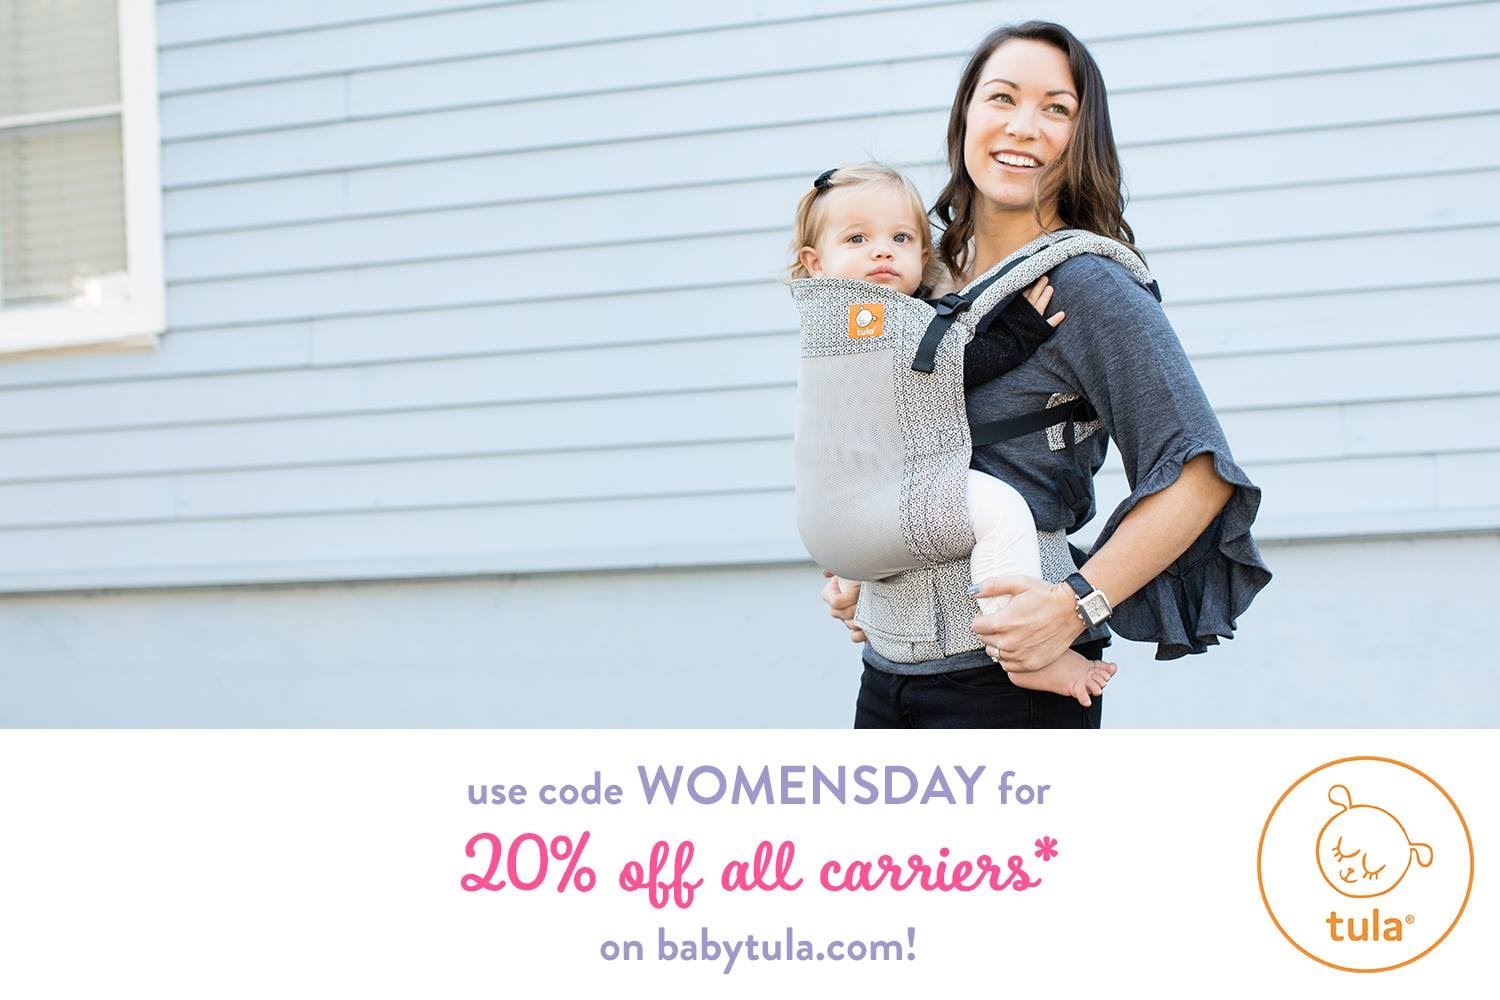 Tula Baby Carrier Discount Codes Baby Viewer › promo codes for potlala. tula baby carrier discount codes baby